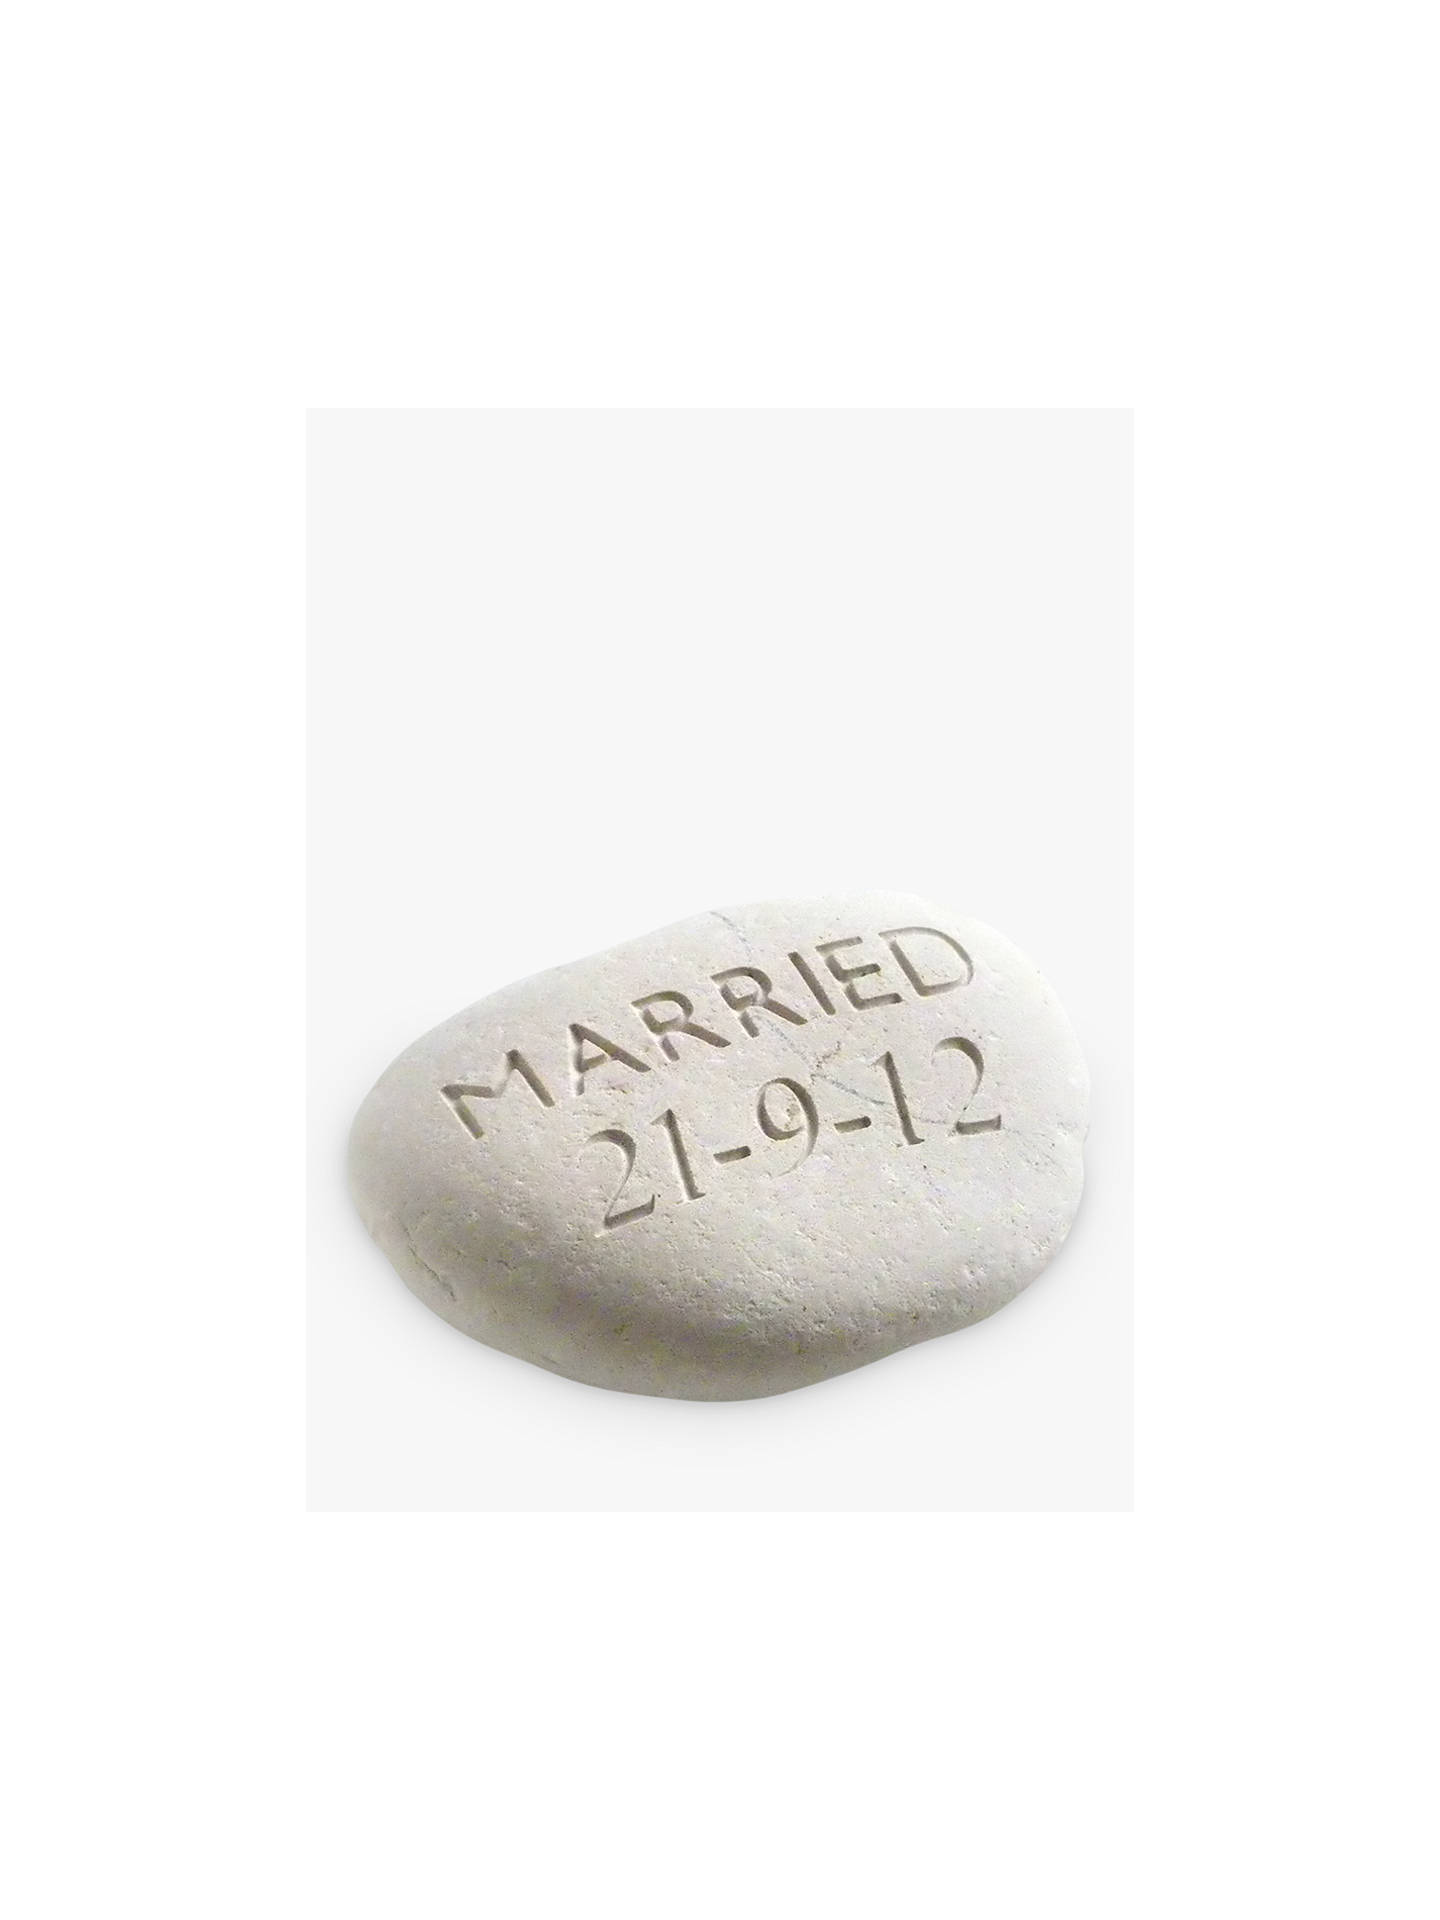 BuyPersonalised 'Married' Wedding Stone Online at johnlewis.com